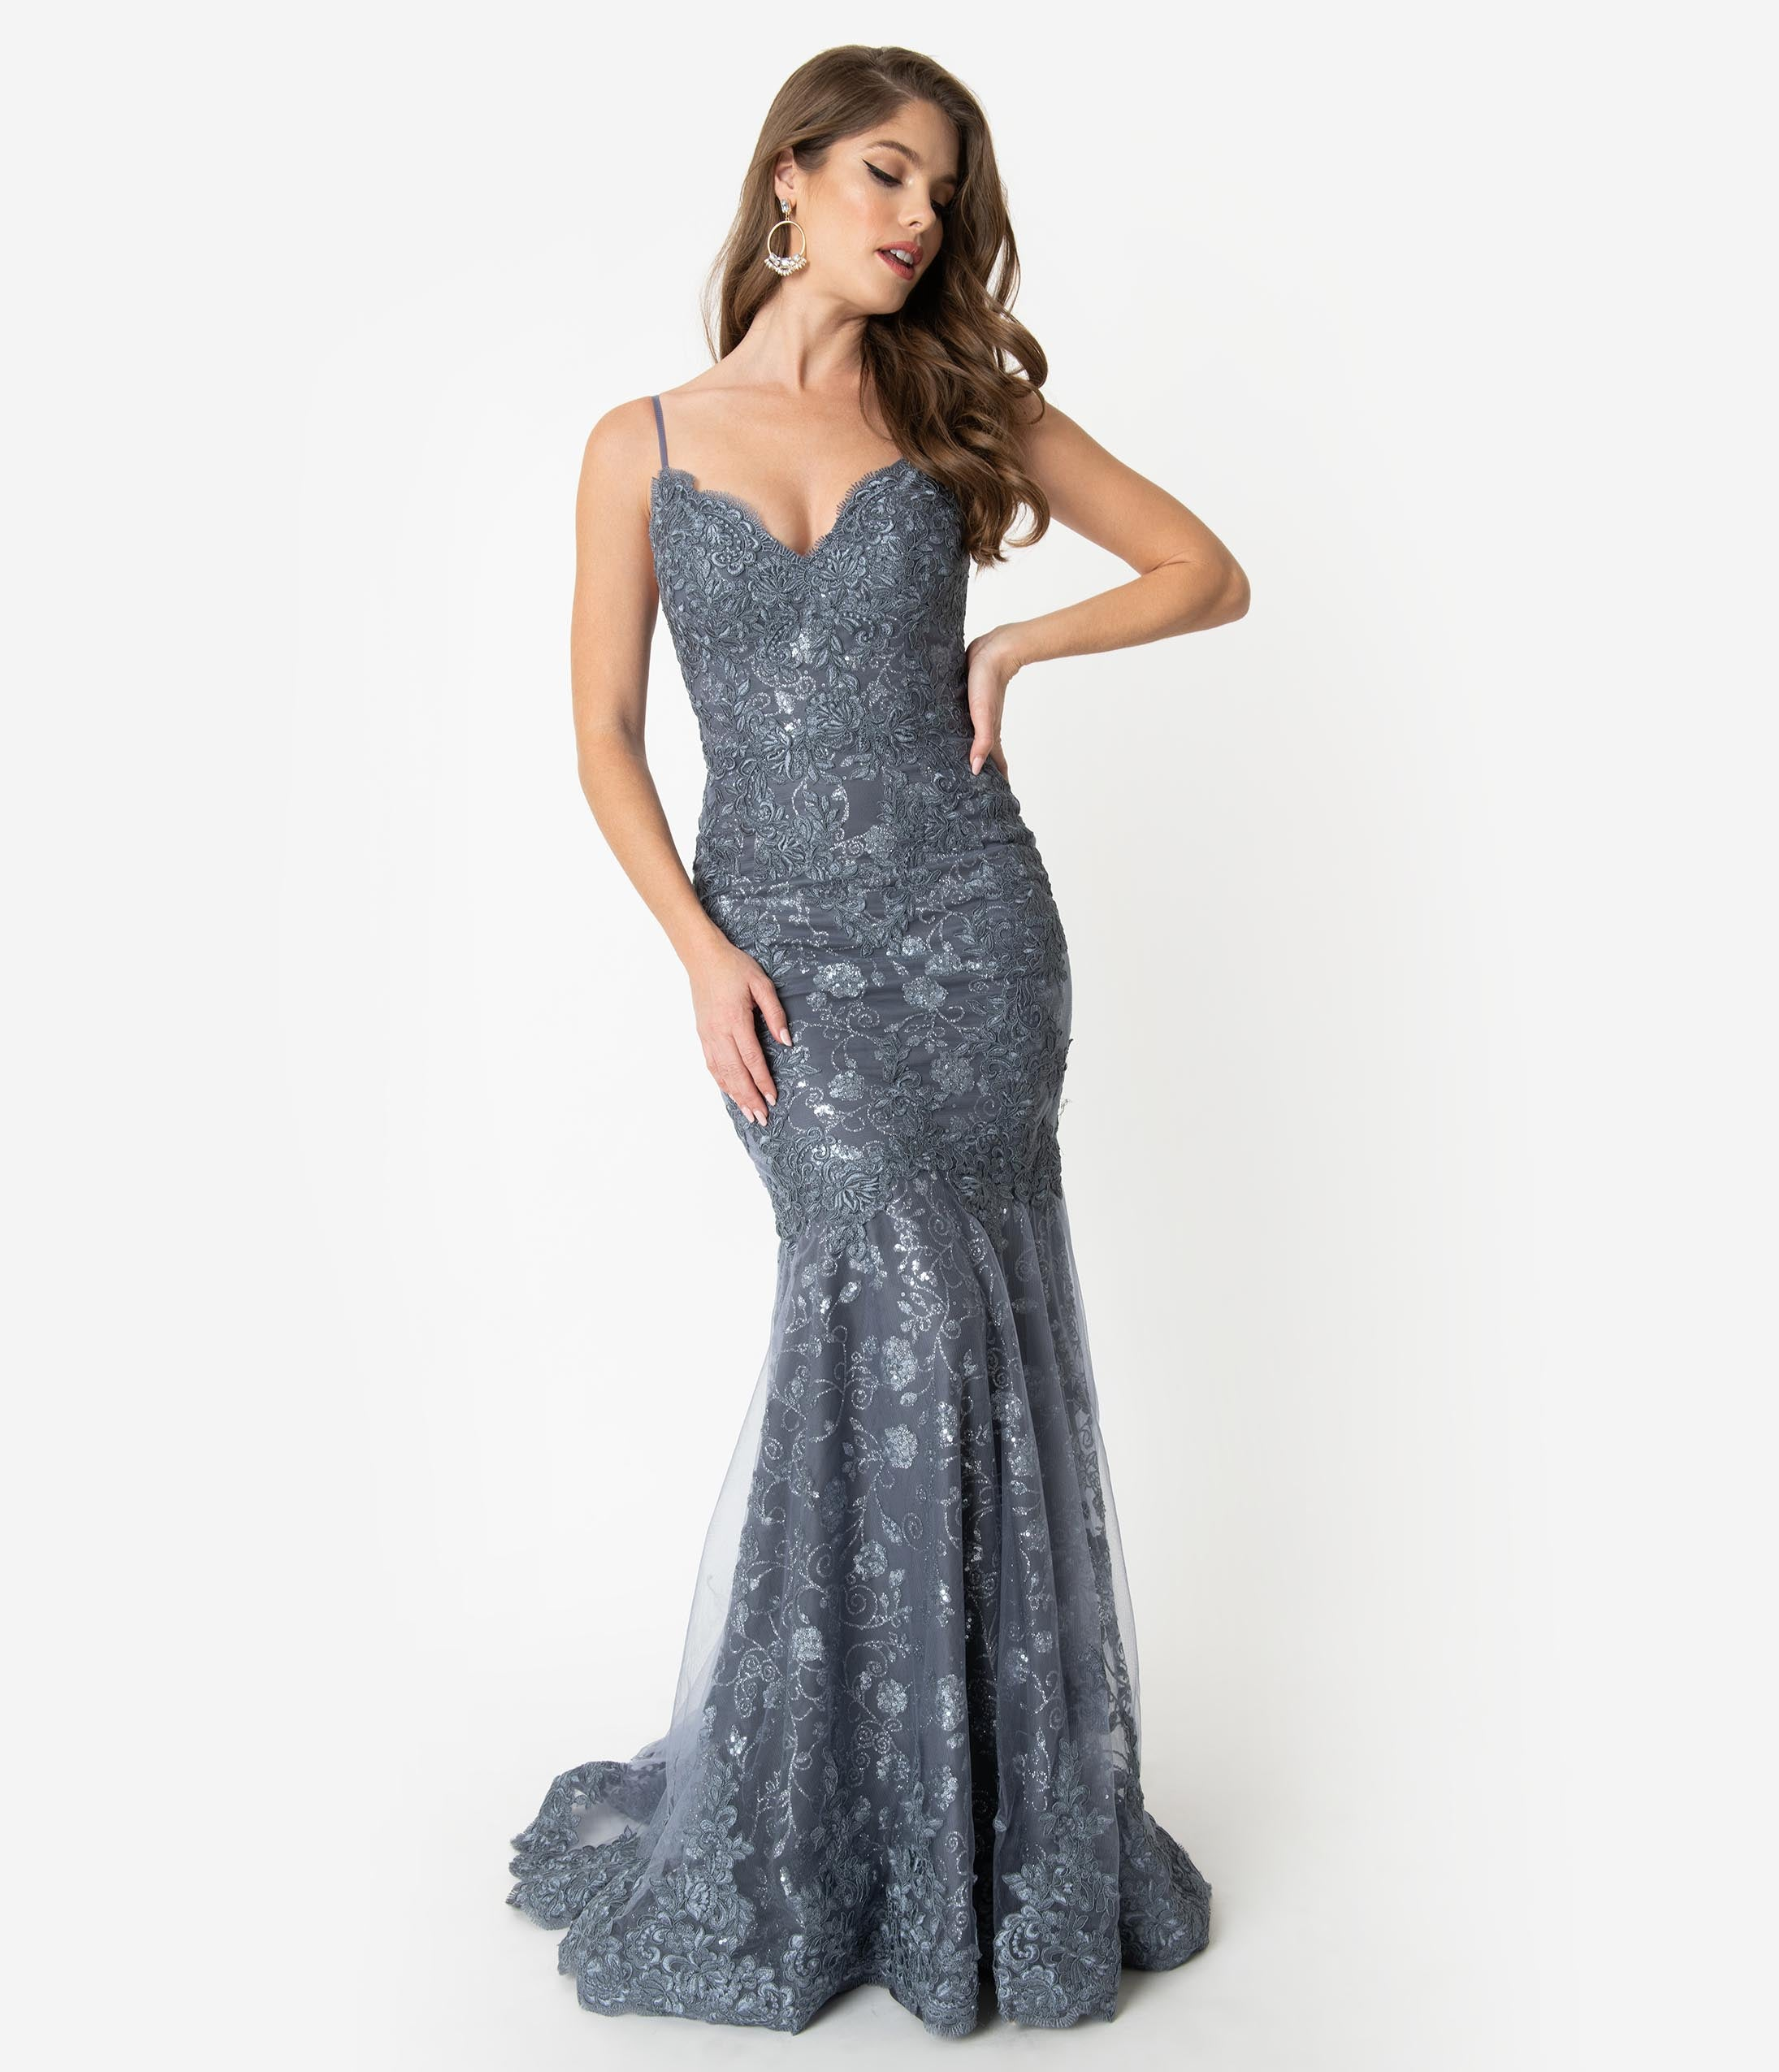 1930s Evening Dresses | Old Hollywood Dress Smokey Blue Sparkling Sequin Lace Fitted Gown $268.00 AT vintagedancer.com